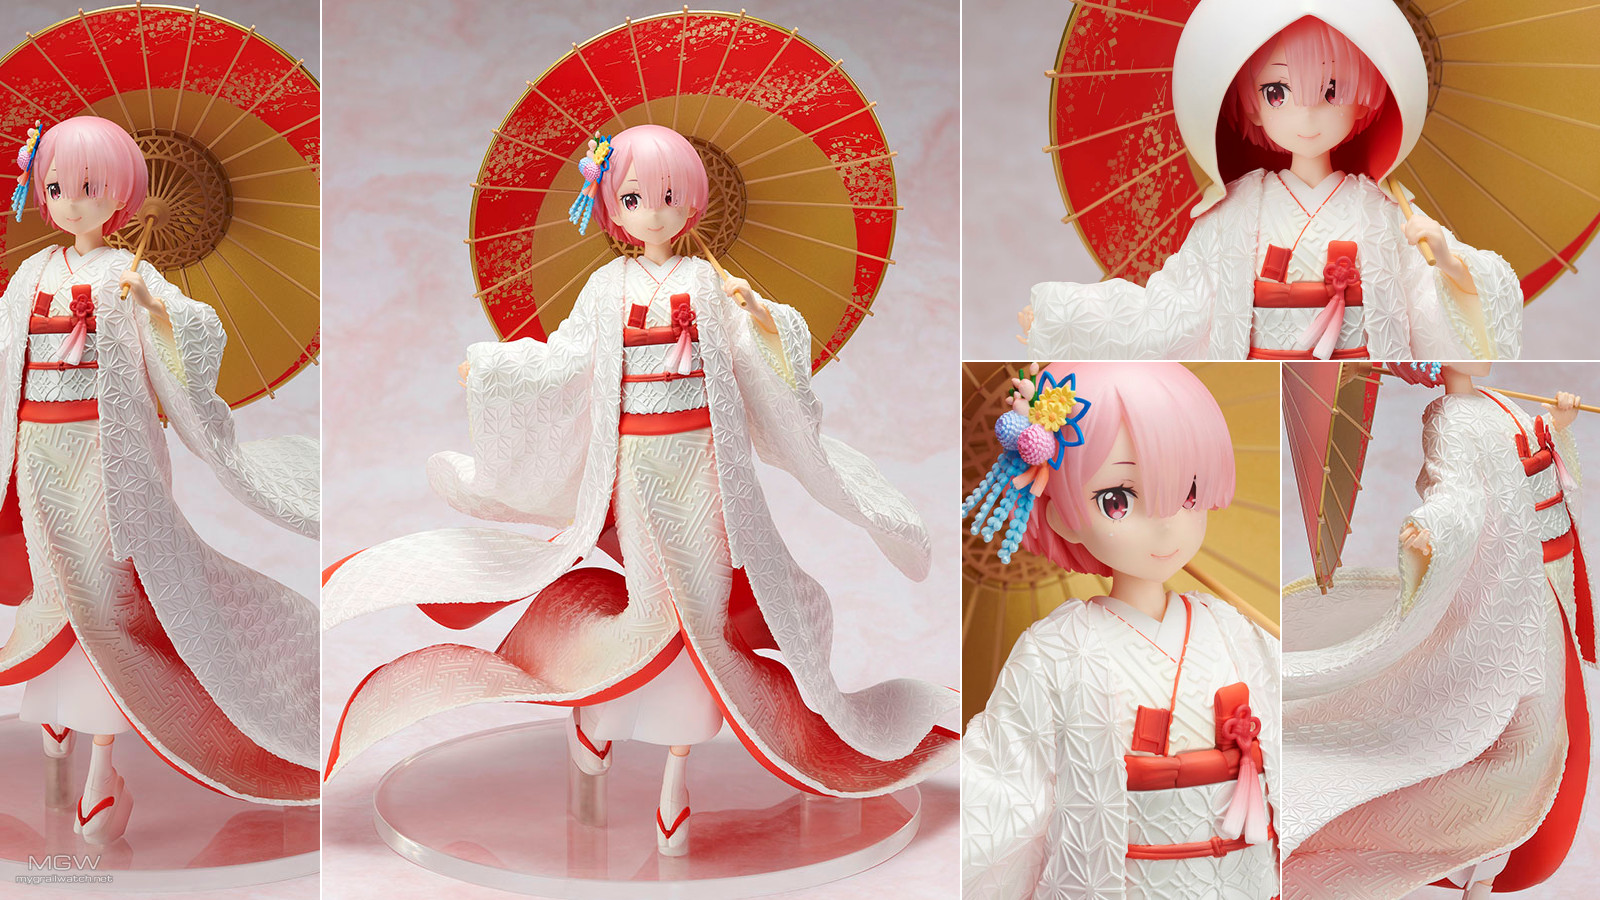 Ram White Kimono by FuRyu from ReZERO Starting Life in Another World